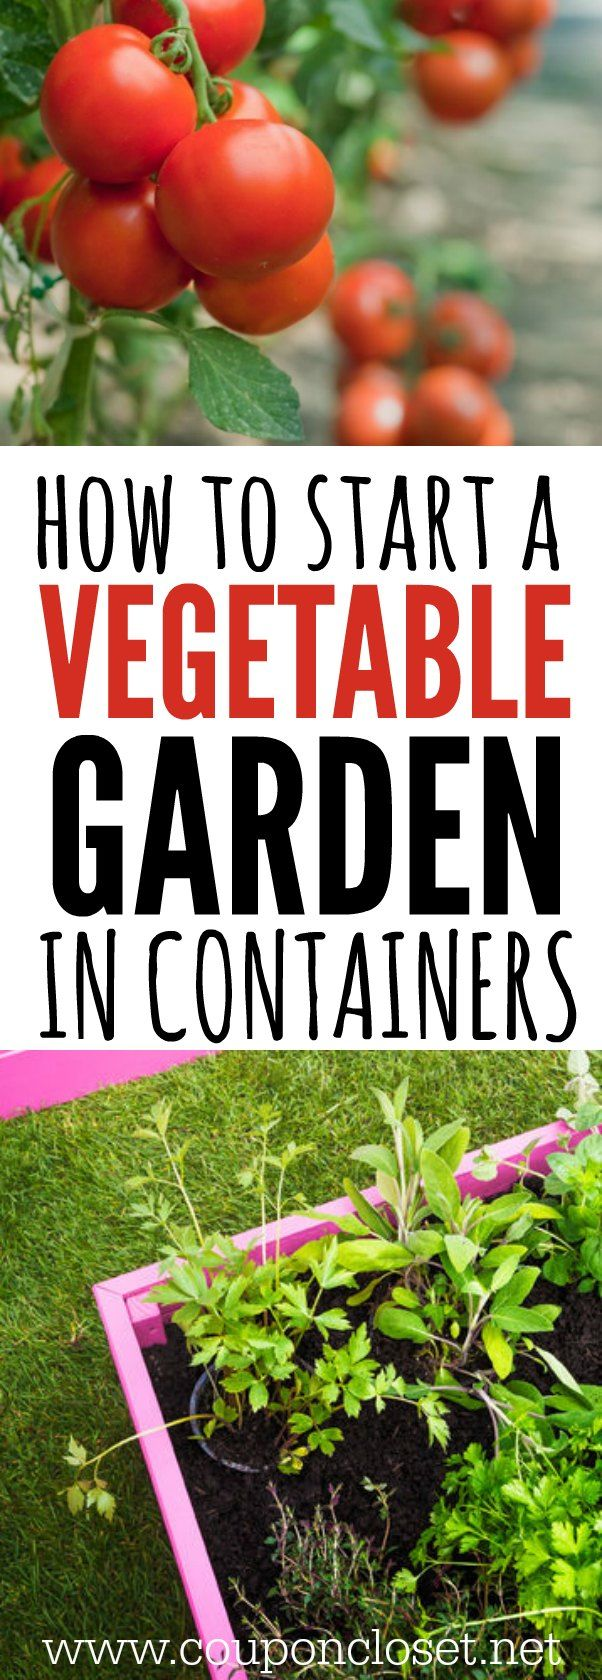 1000 ideas about container vegetable gardening on pinterest garden beds raised garden beds. Black Bedroom Furniture Sets. Home Design Ideas